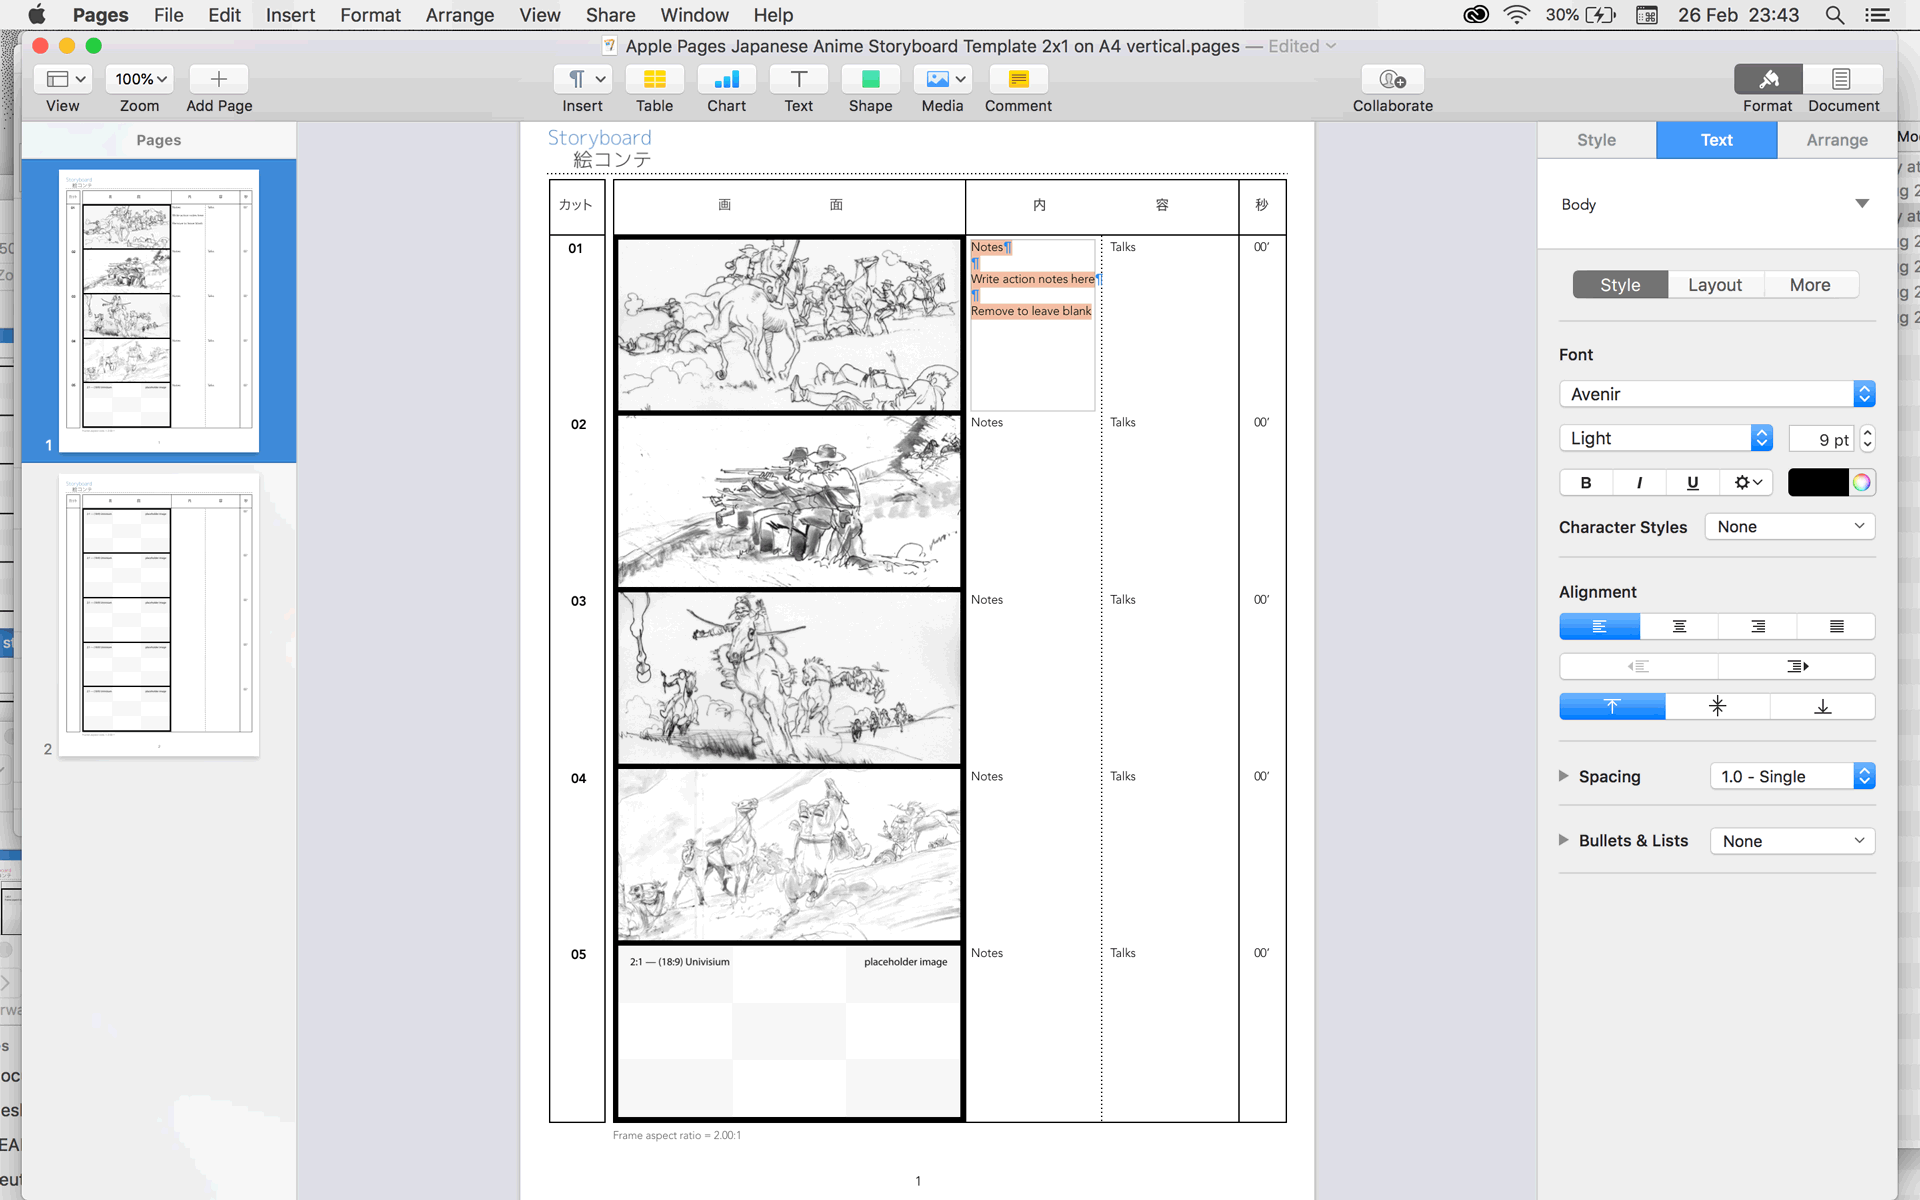 Apple Pages anime storyboard template for 2.00:1 2.00:1 aspect ratio films